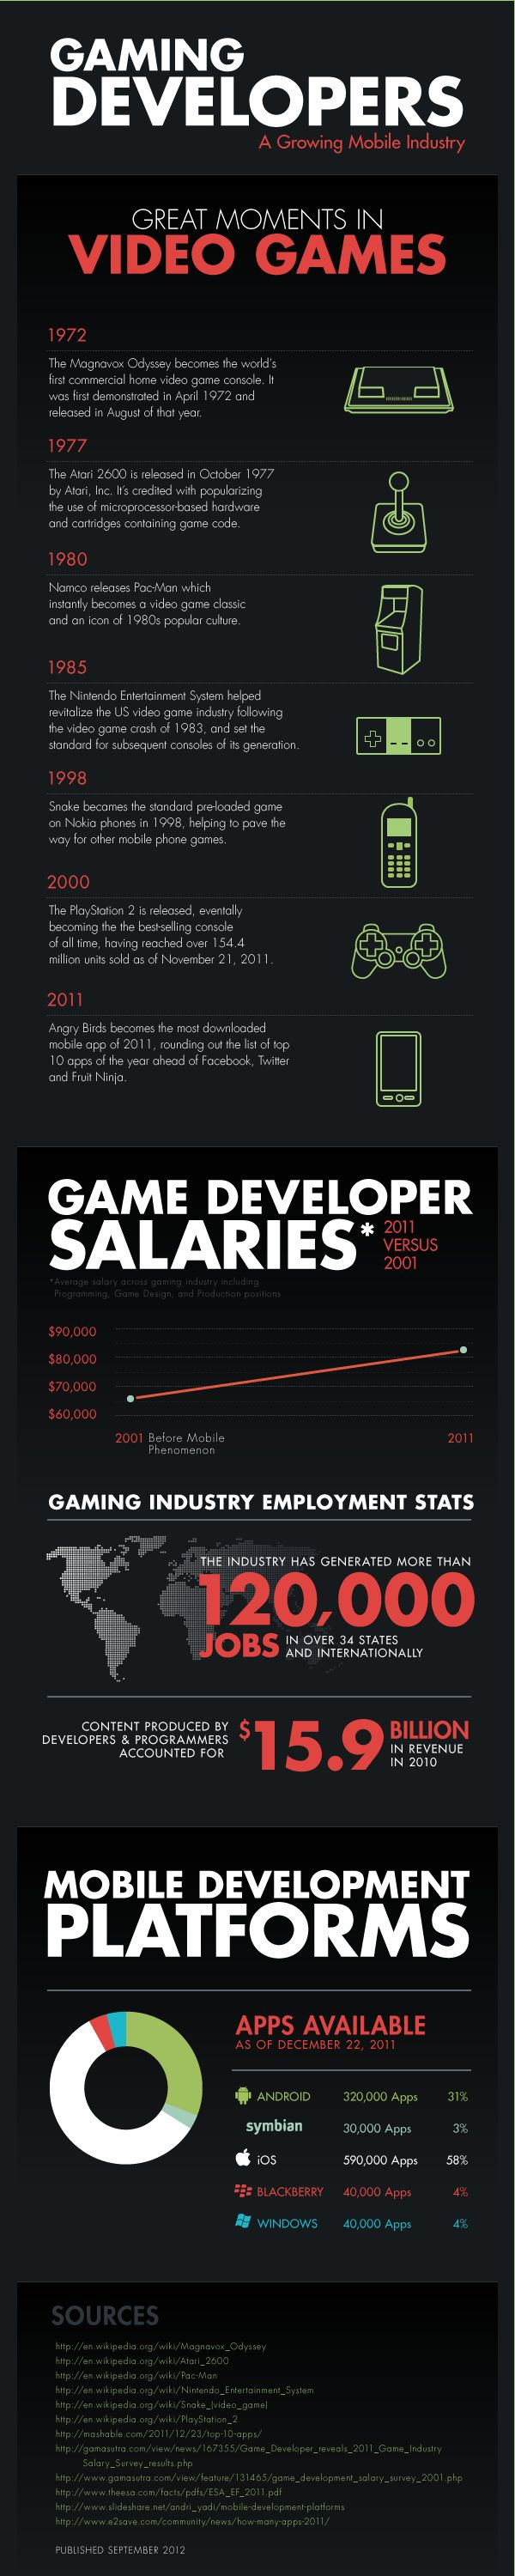 Gaming Developers: A Growing Mobile Industry[INFOGRAPHIC]